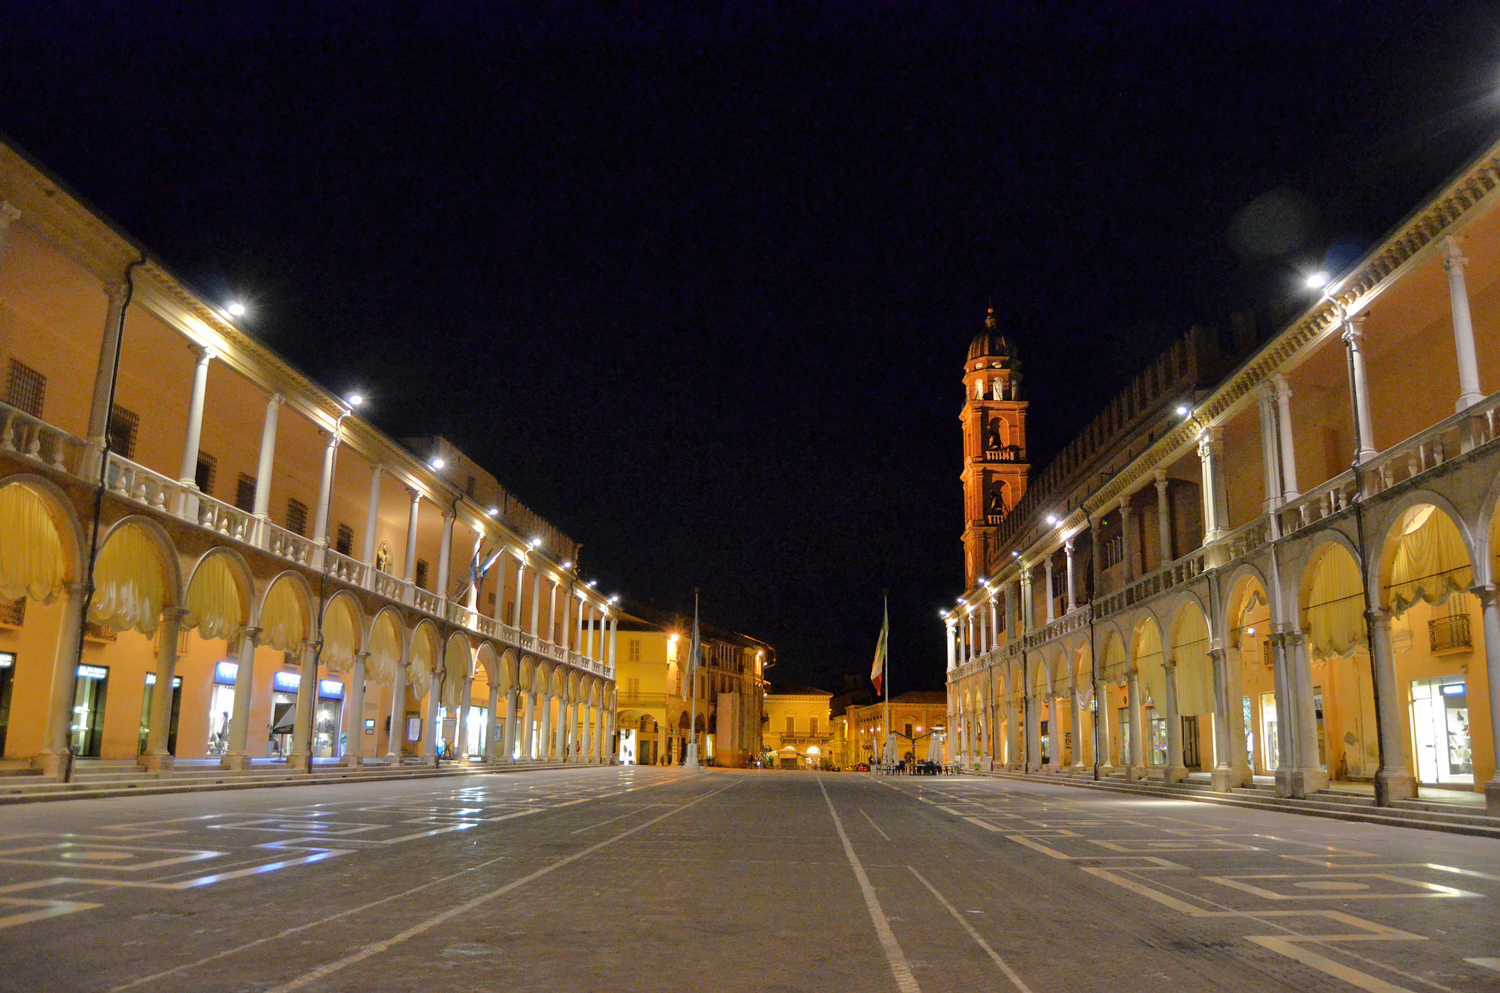 Faenza | Foto di Pedro, via Flickr